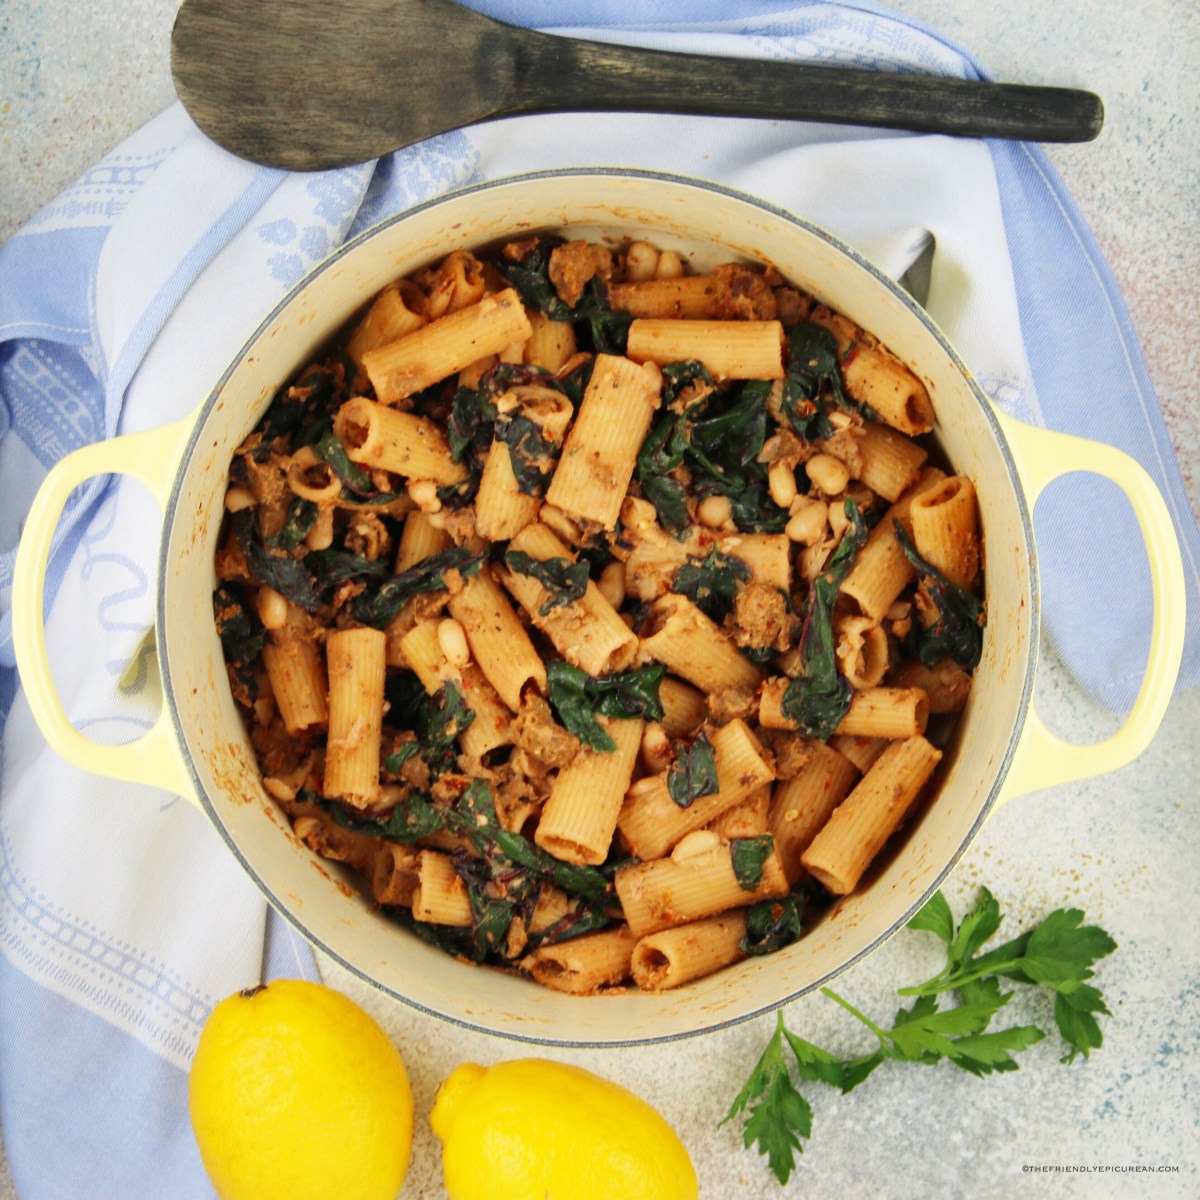 Rigatoni with Vegan Sausage, White Beans, and Swiss Chard